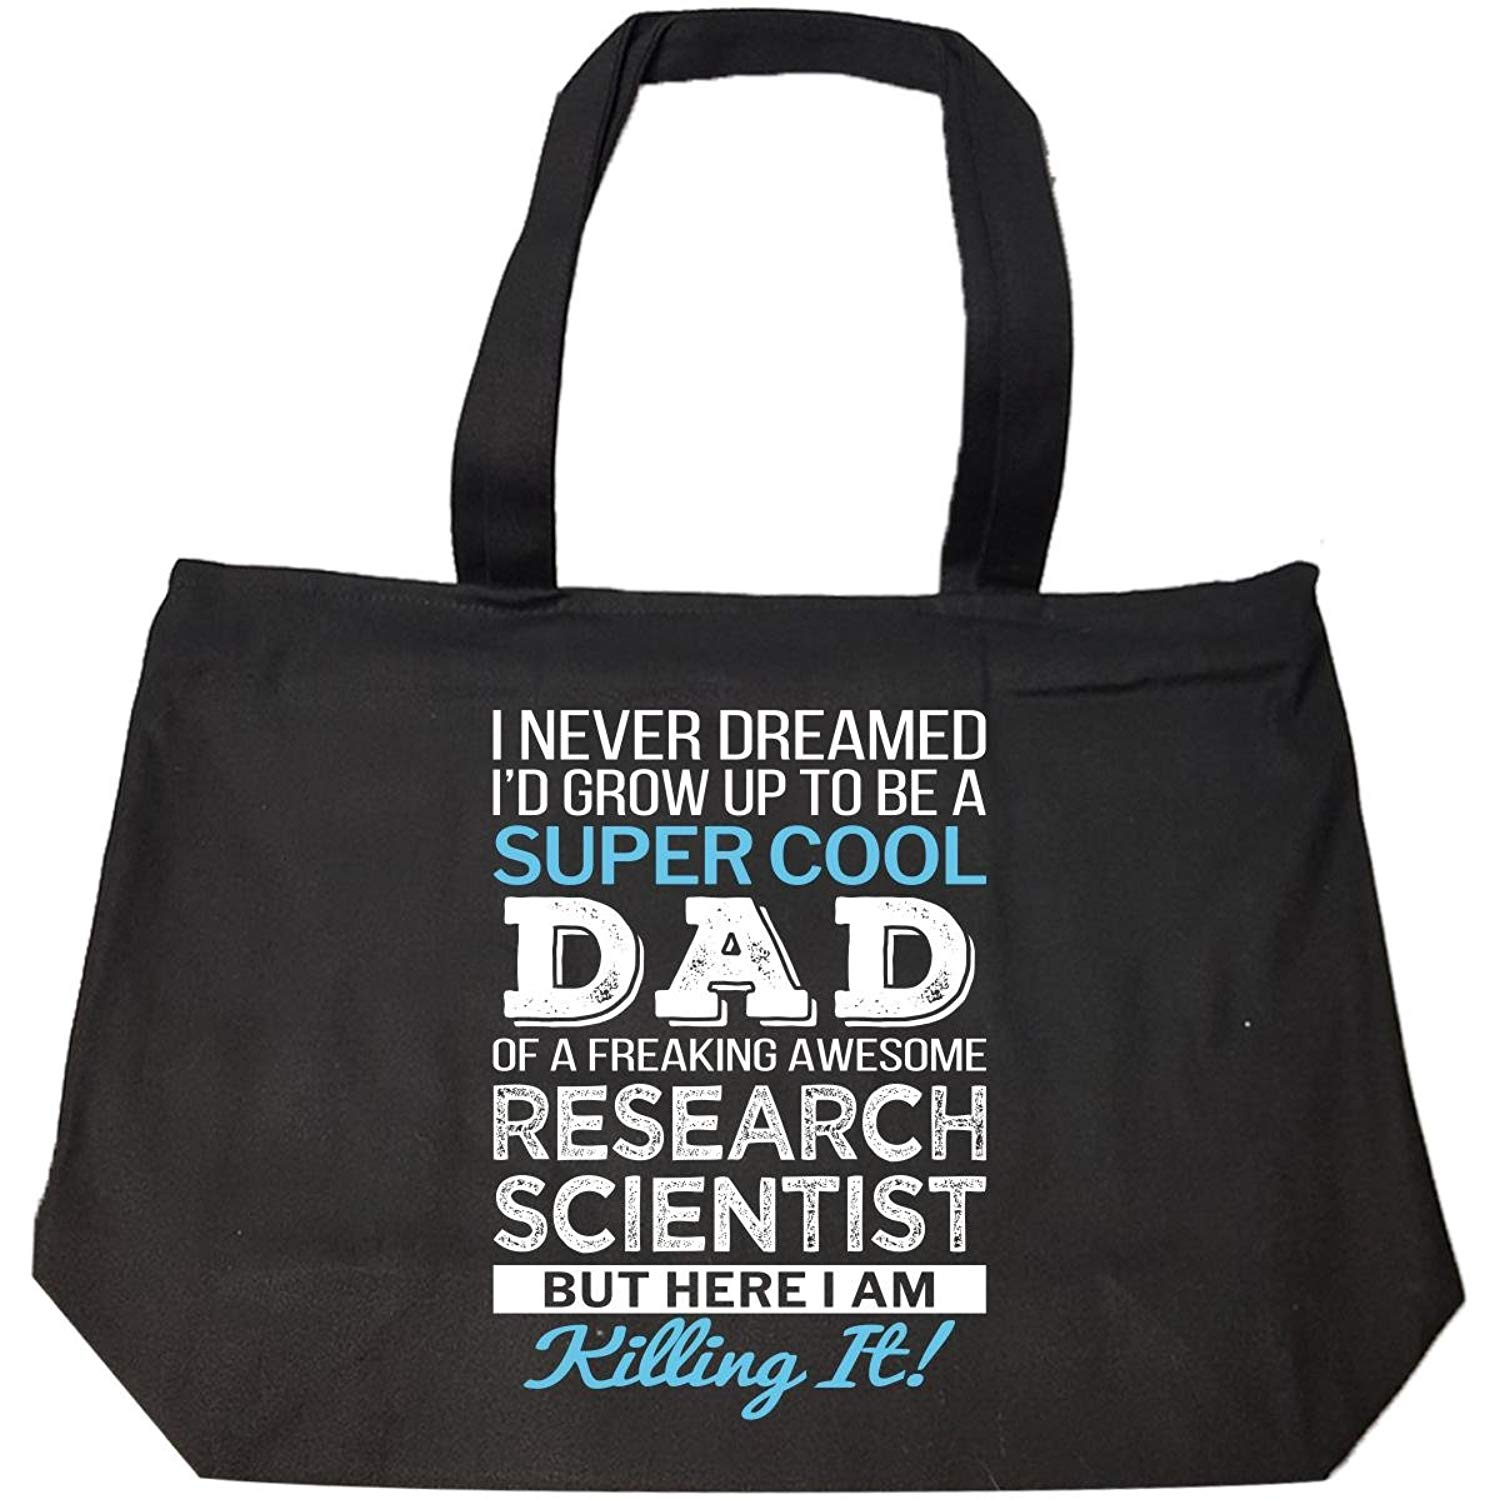 Super Cool Dad Of Awesome Research Scientist Dad Funny Gift - Tote Bag With Zip